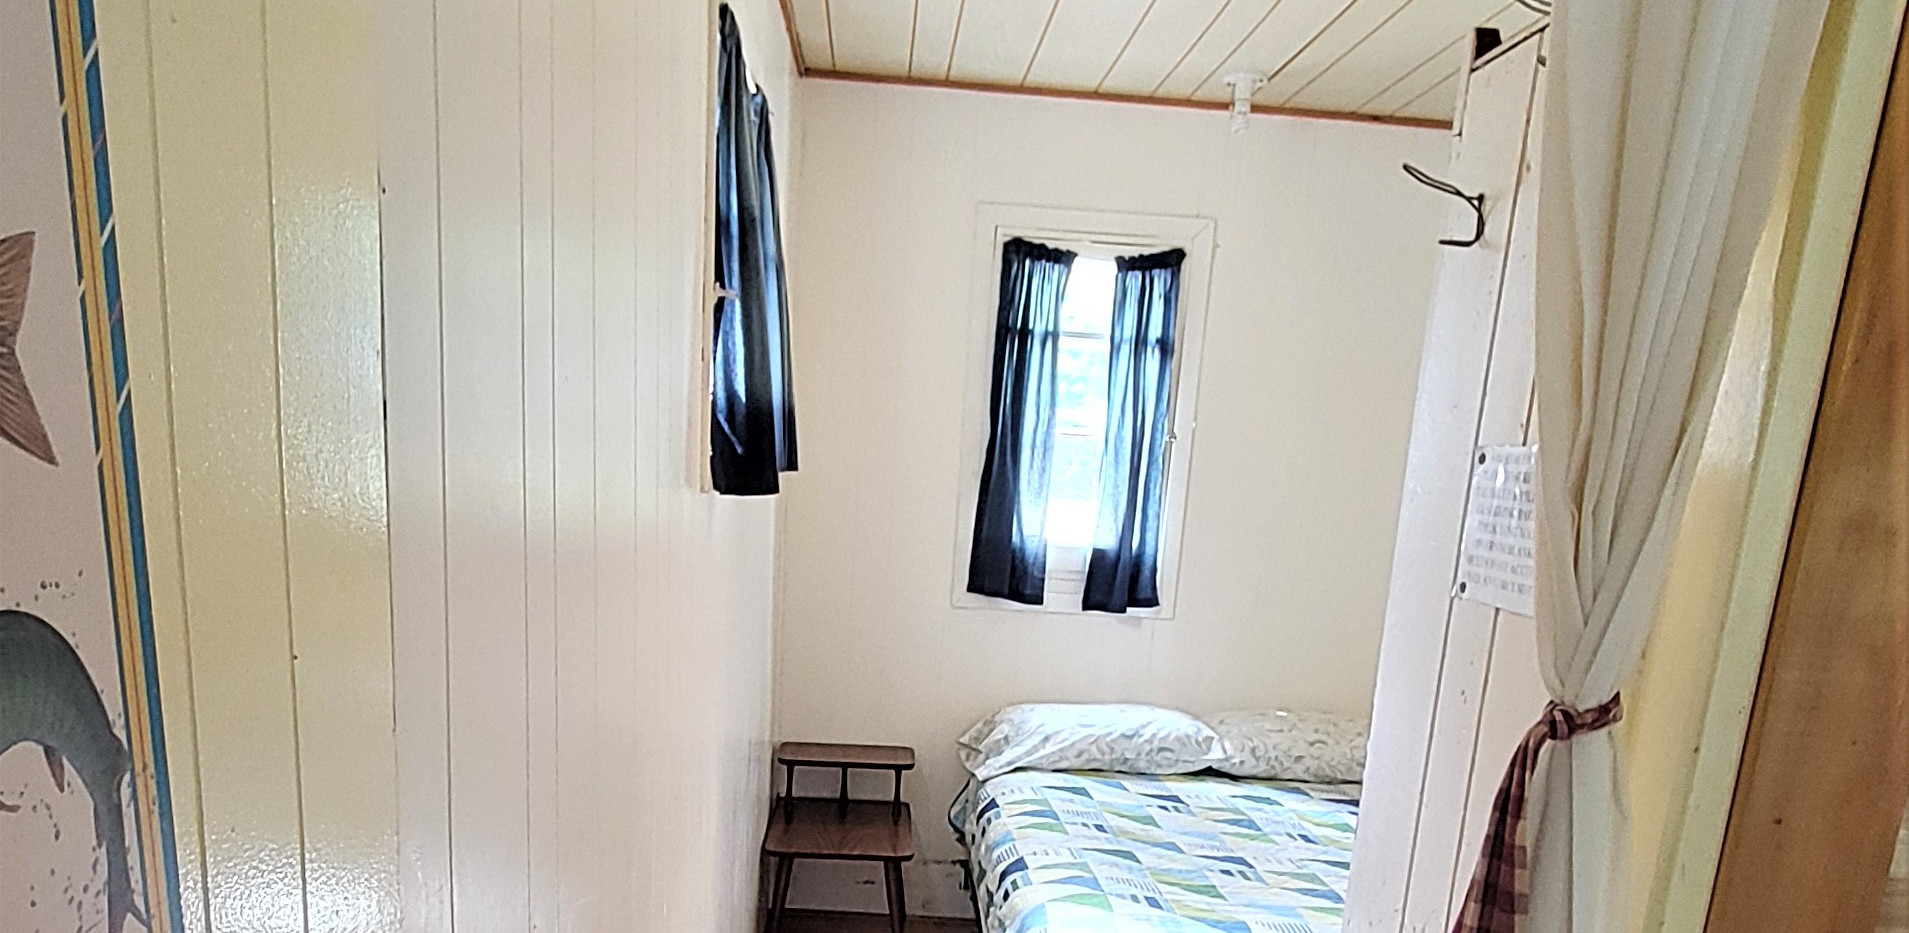 Cottage 3 - double bed Bedroom